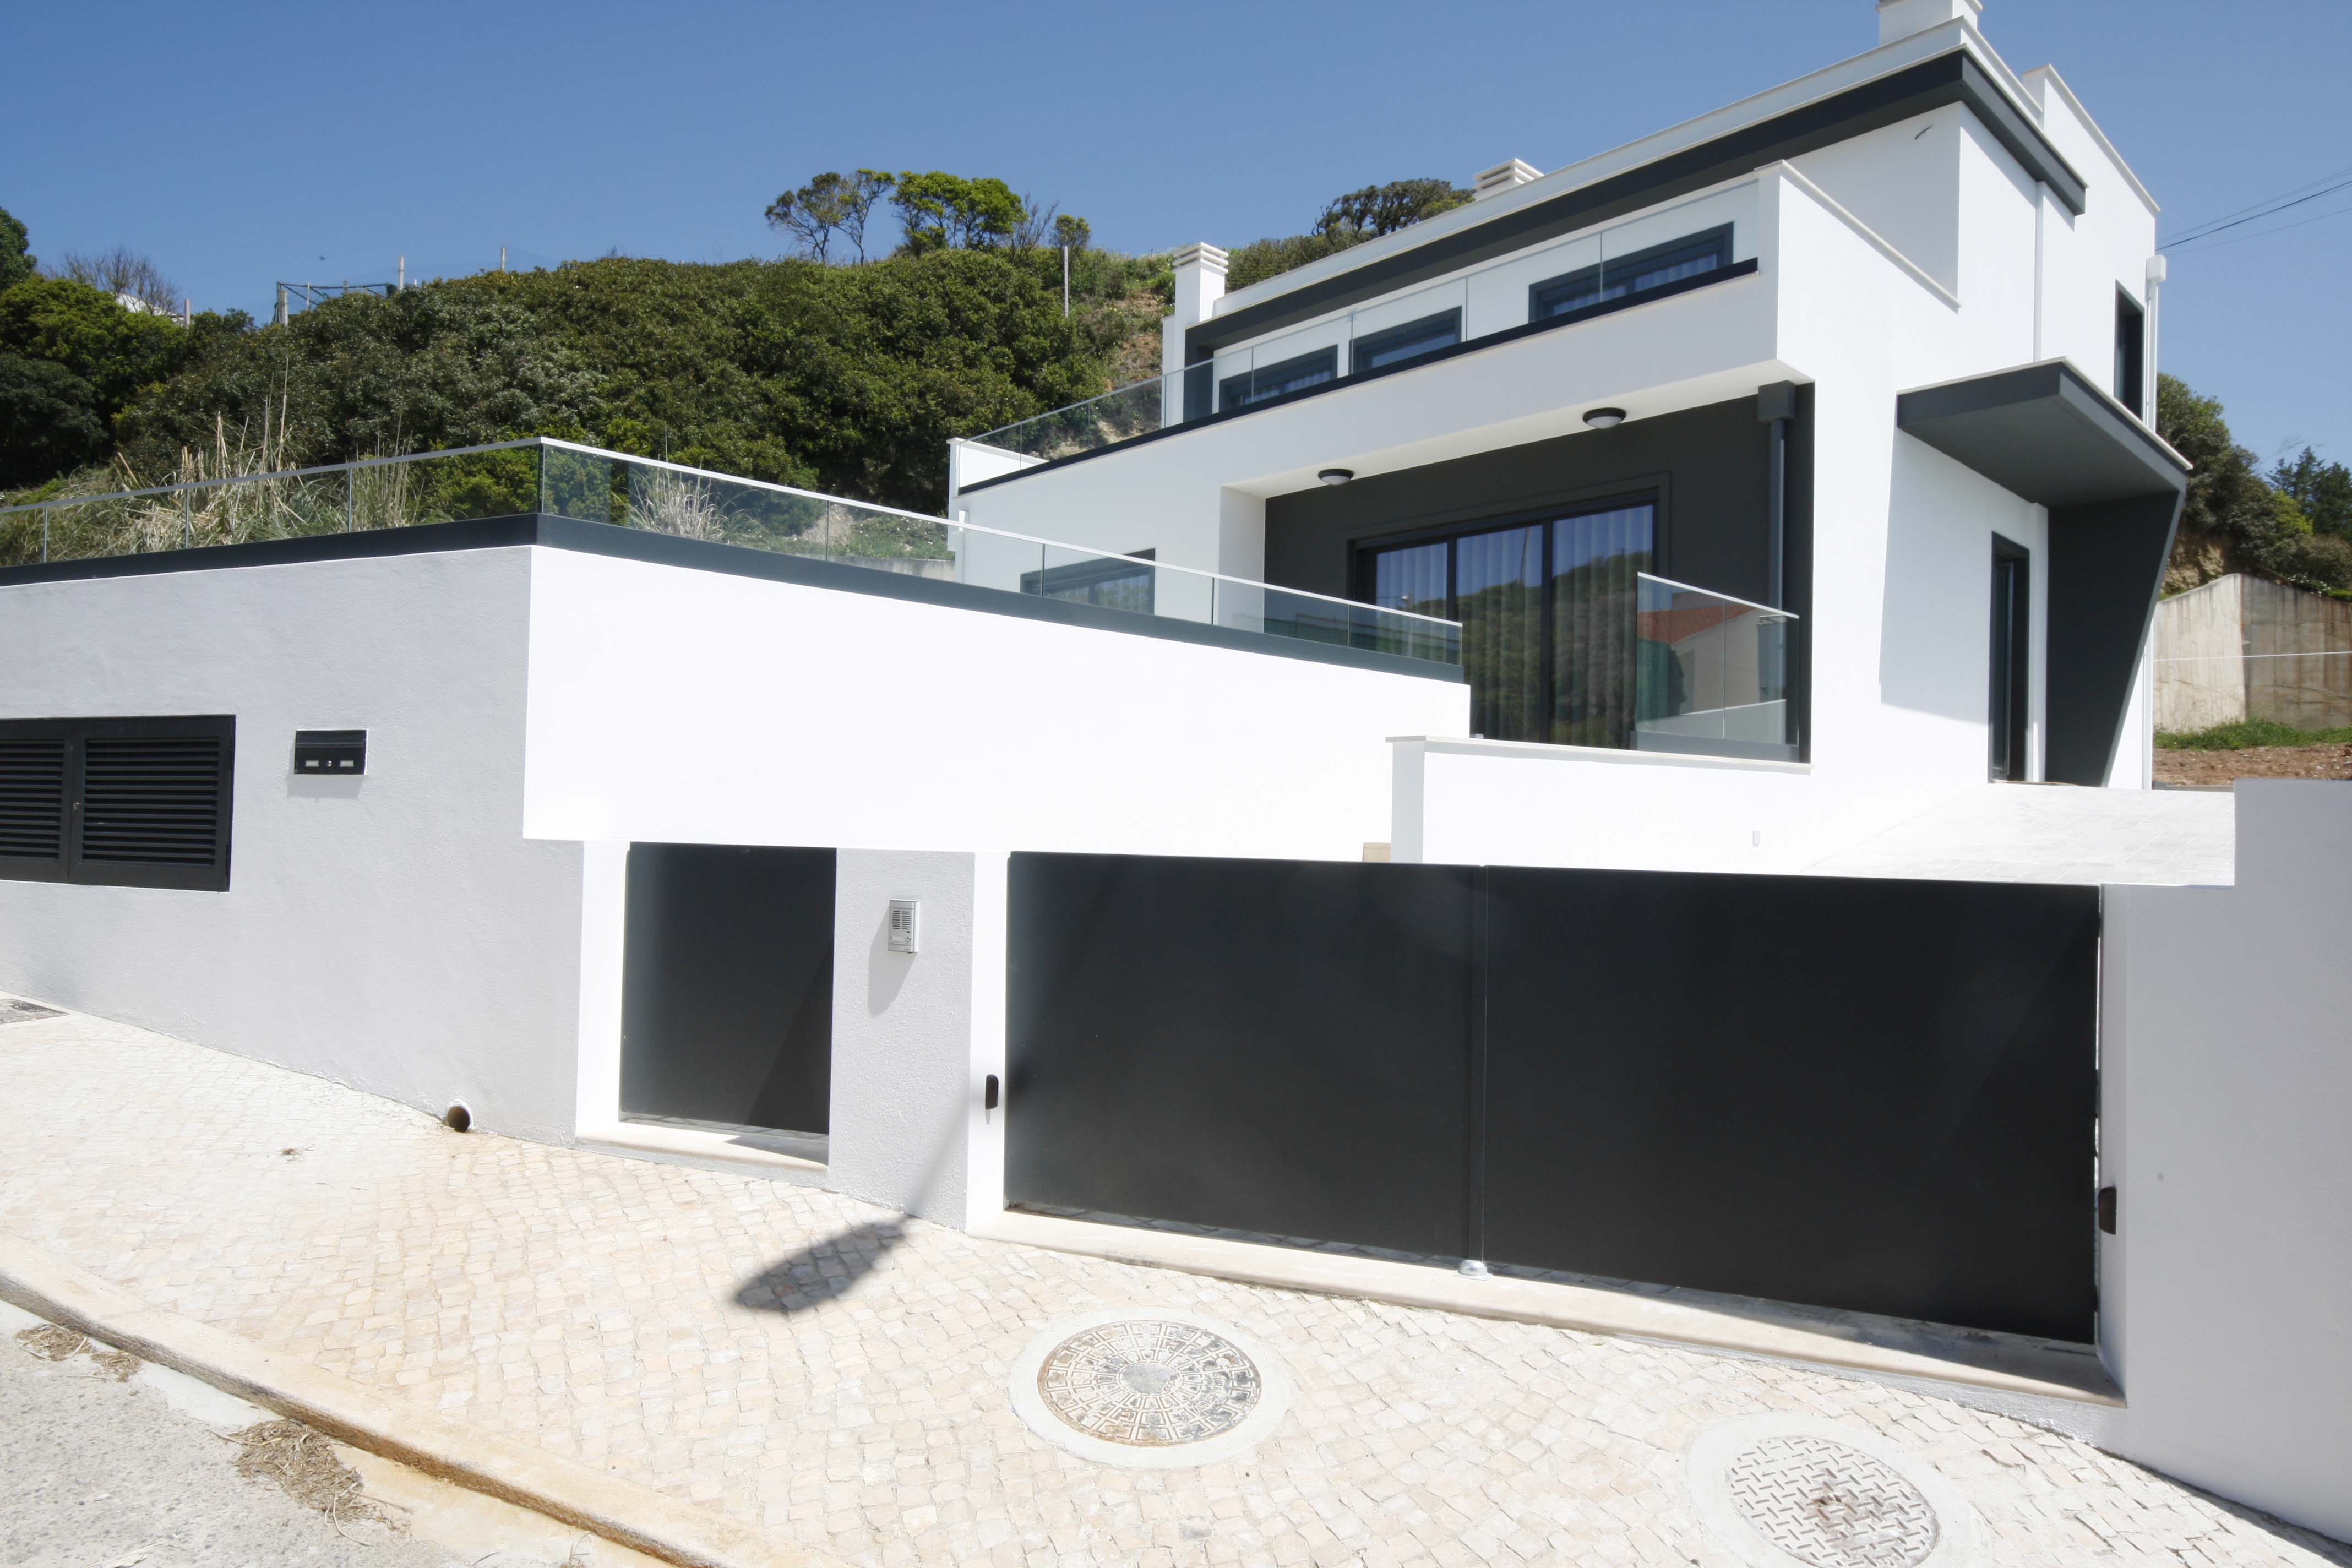 18-vale-sao-martinho-porto-silver-coast-new-buil-construction-portugal-villa-for-sale